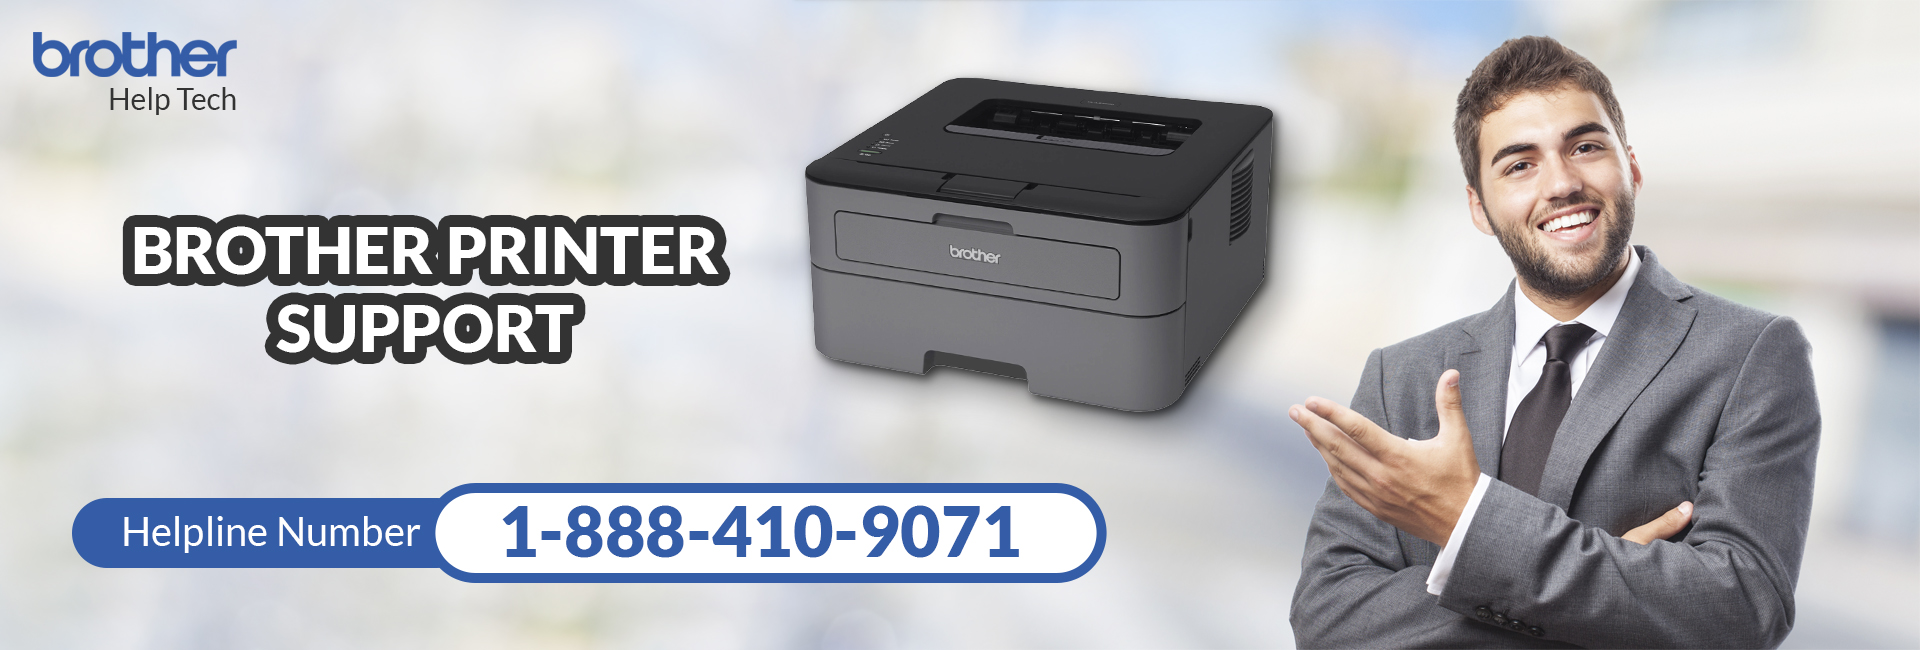 Brother printer Support 1-888-410-9071